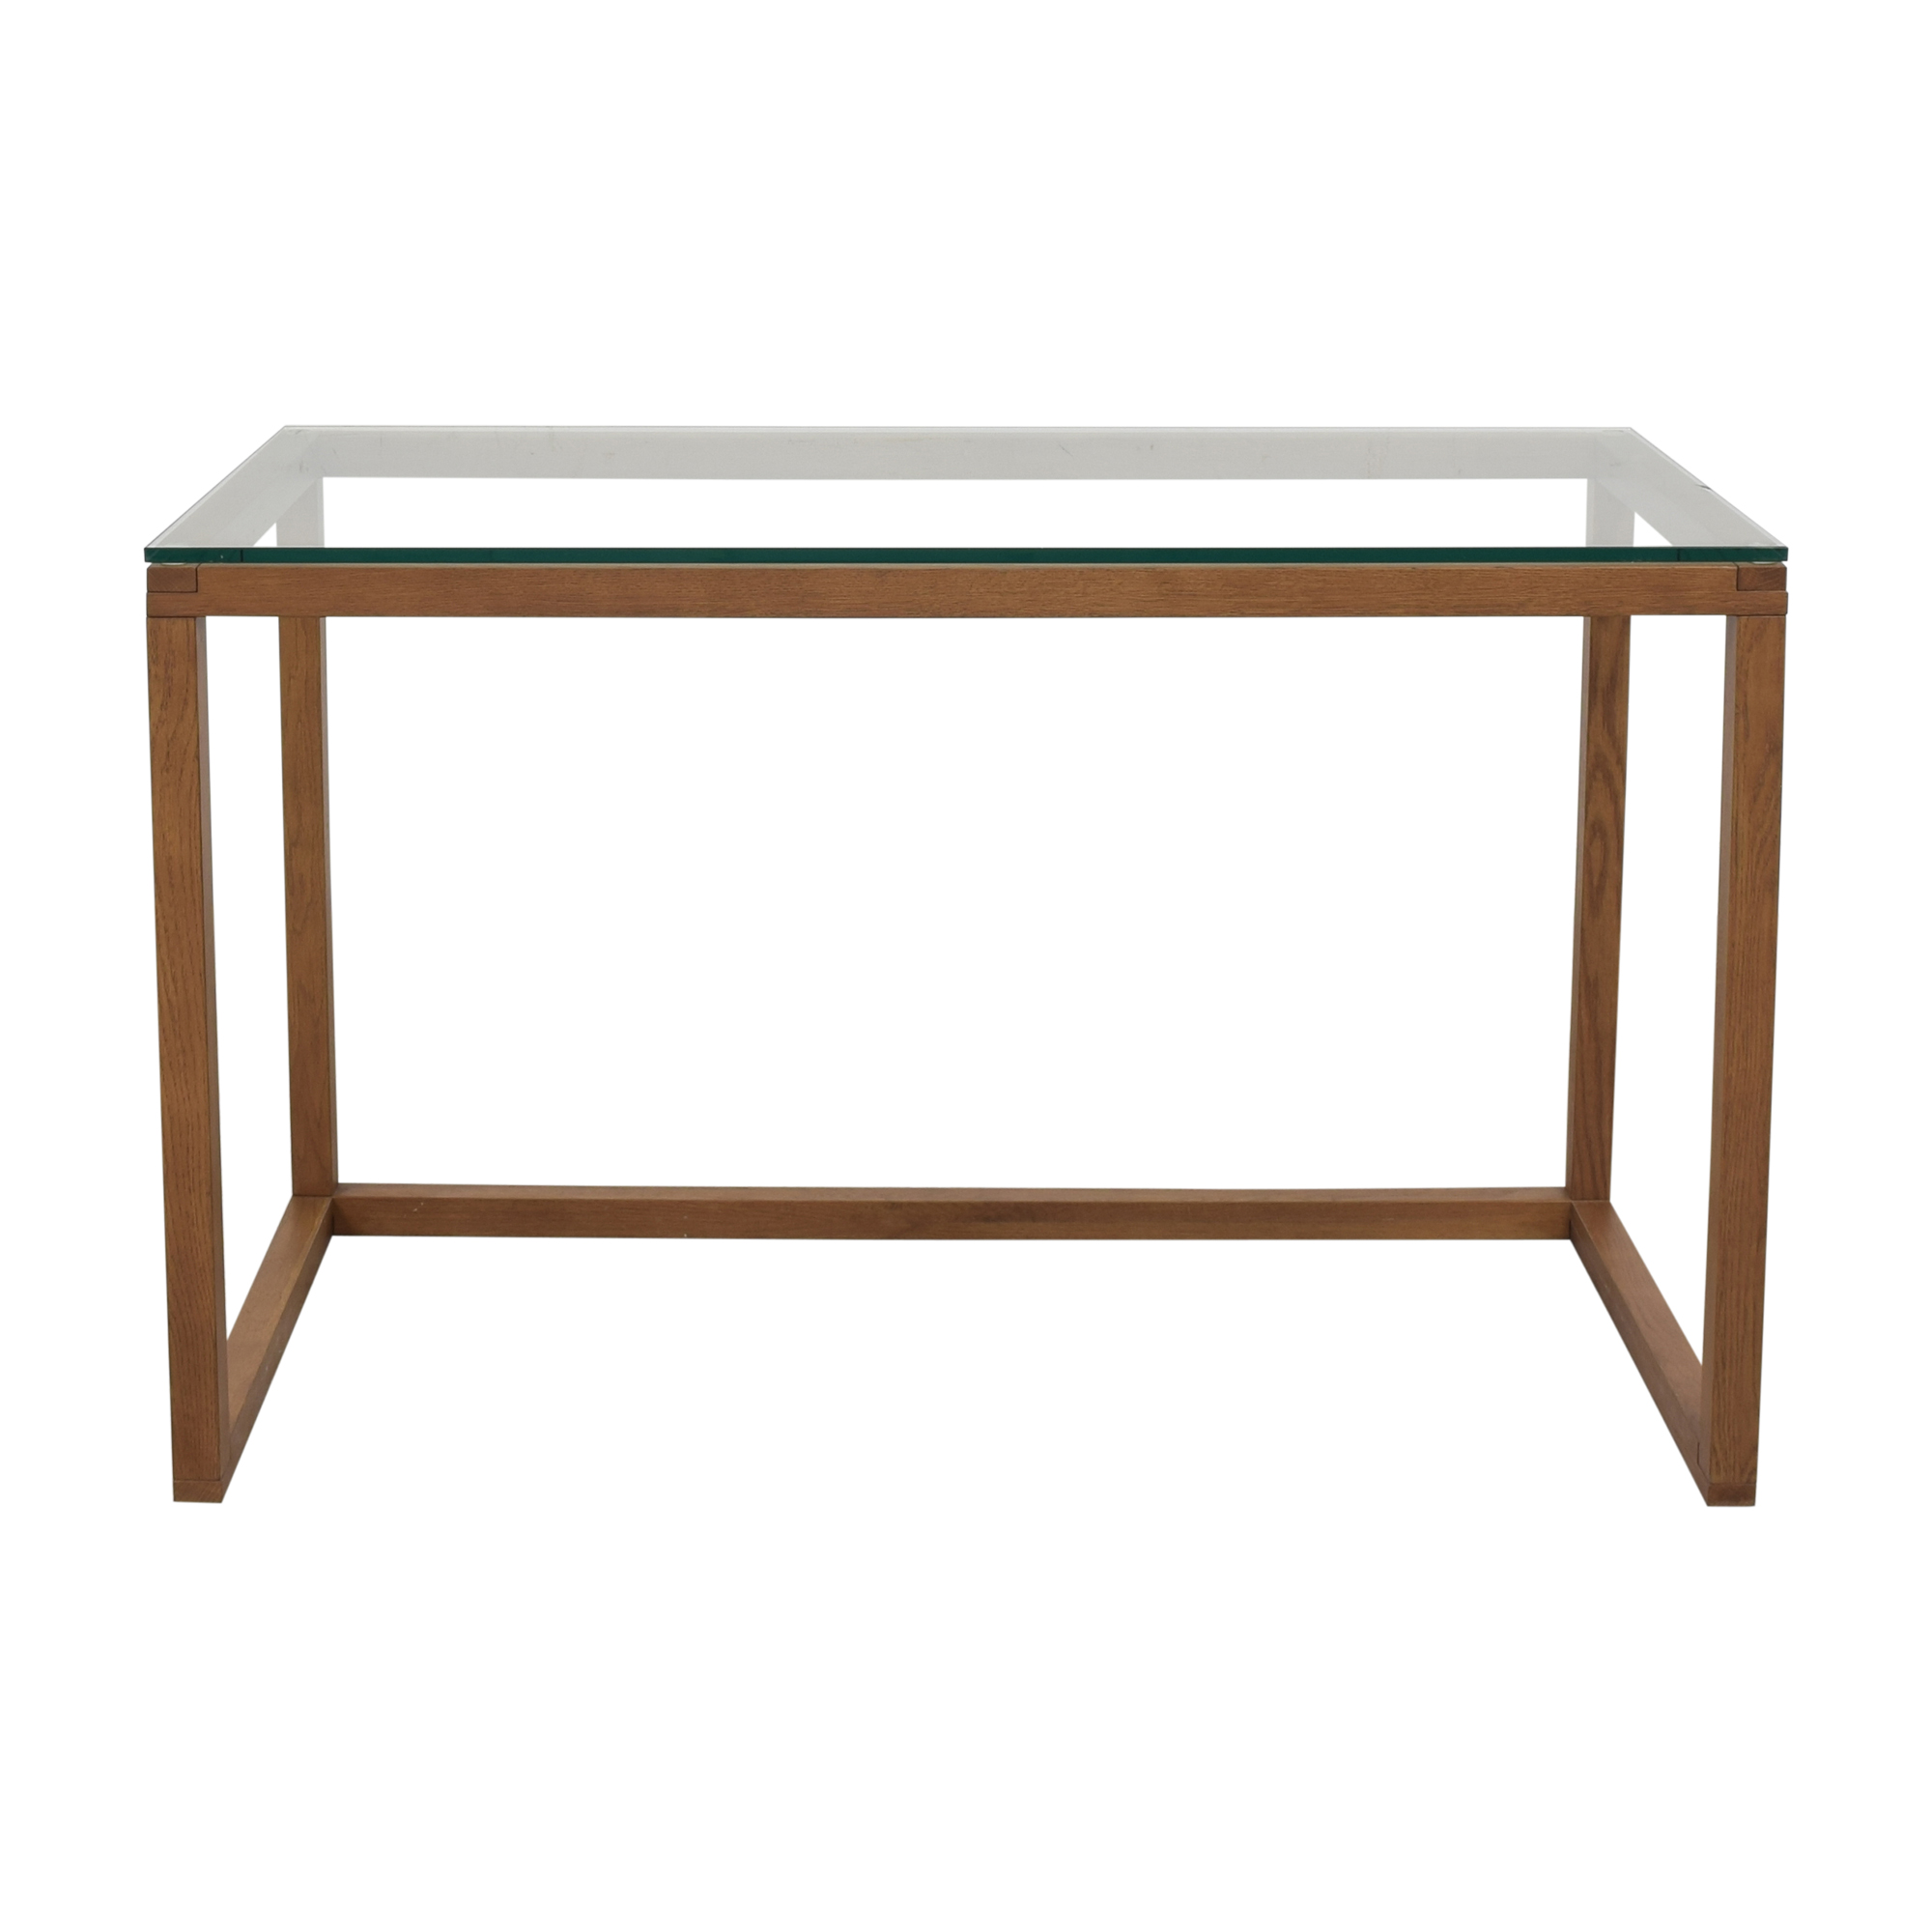 Crate & Barrel Crate & Barrel Anderson Desk dimensions